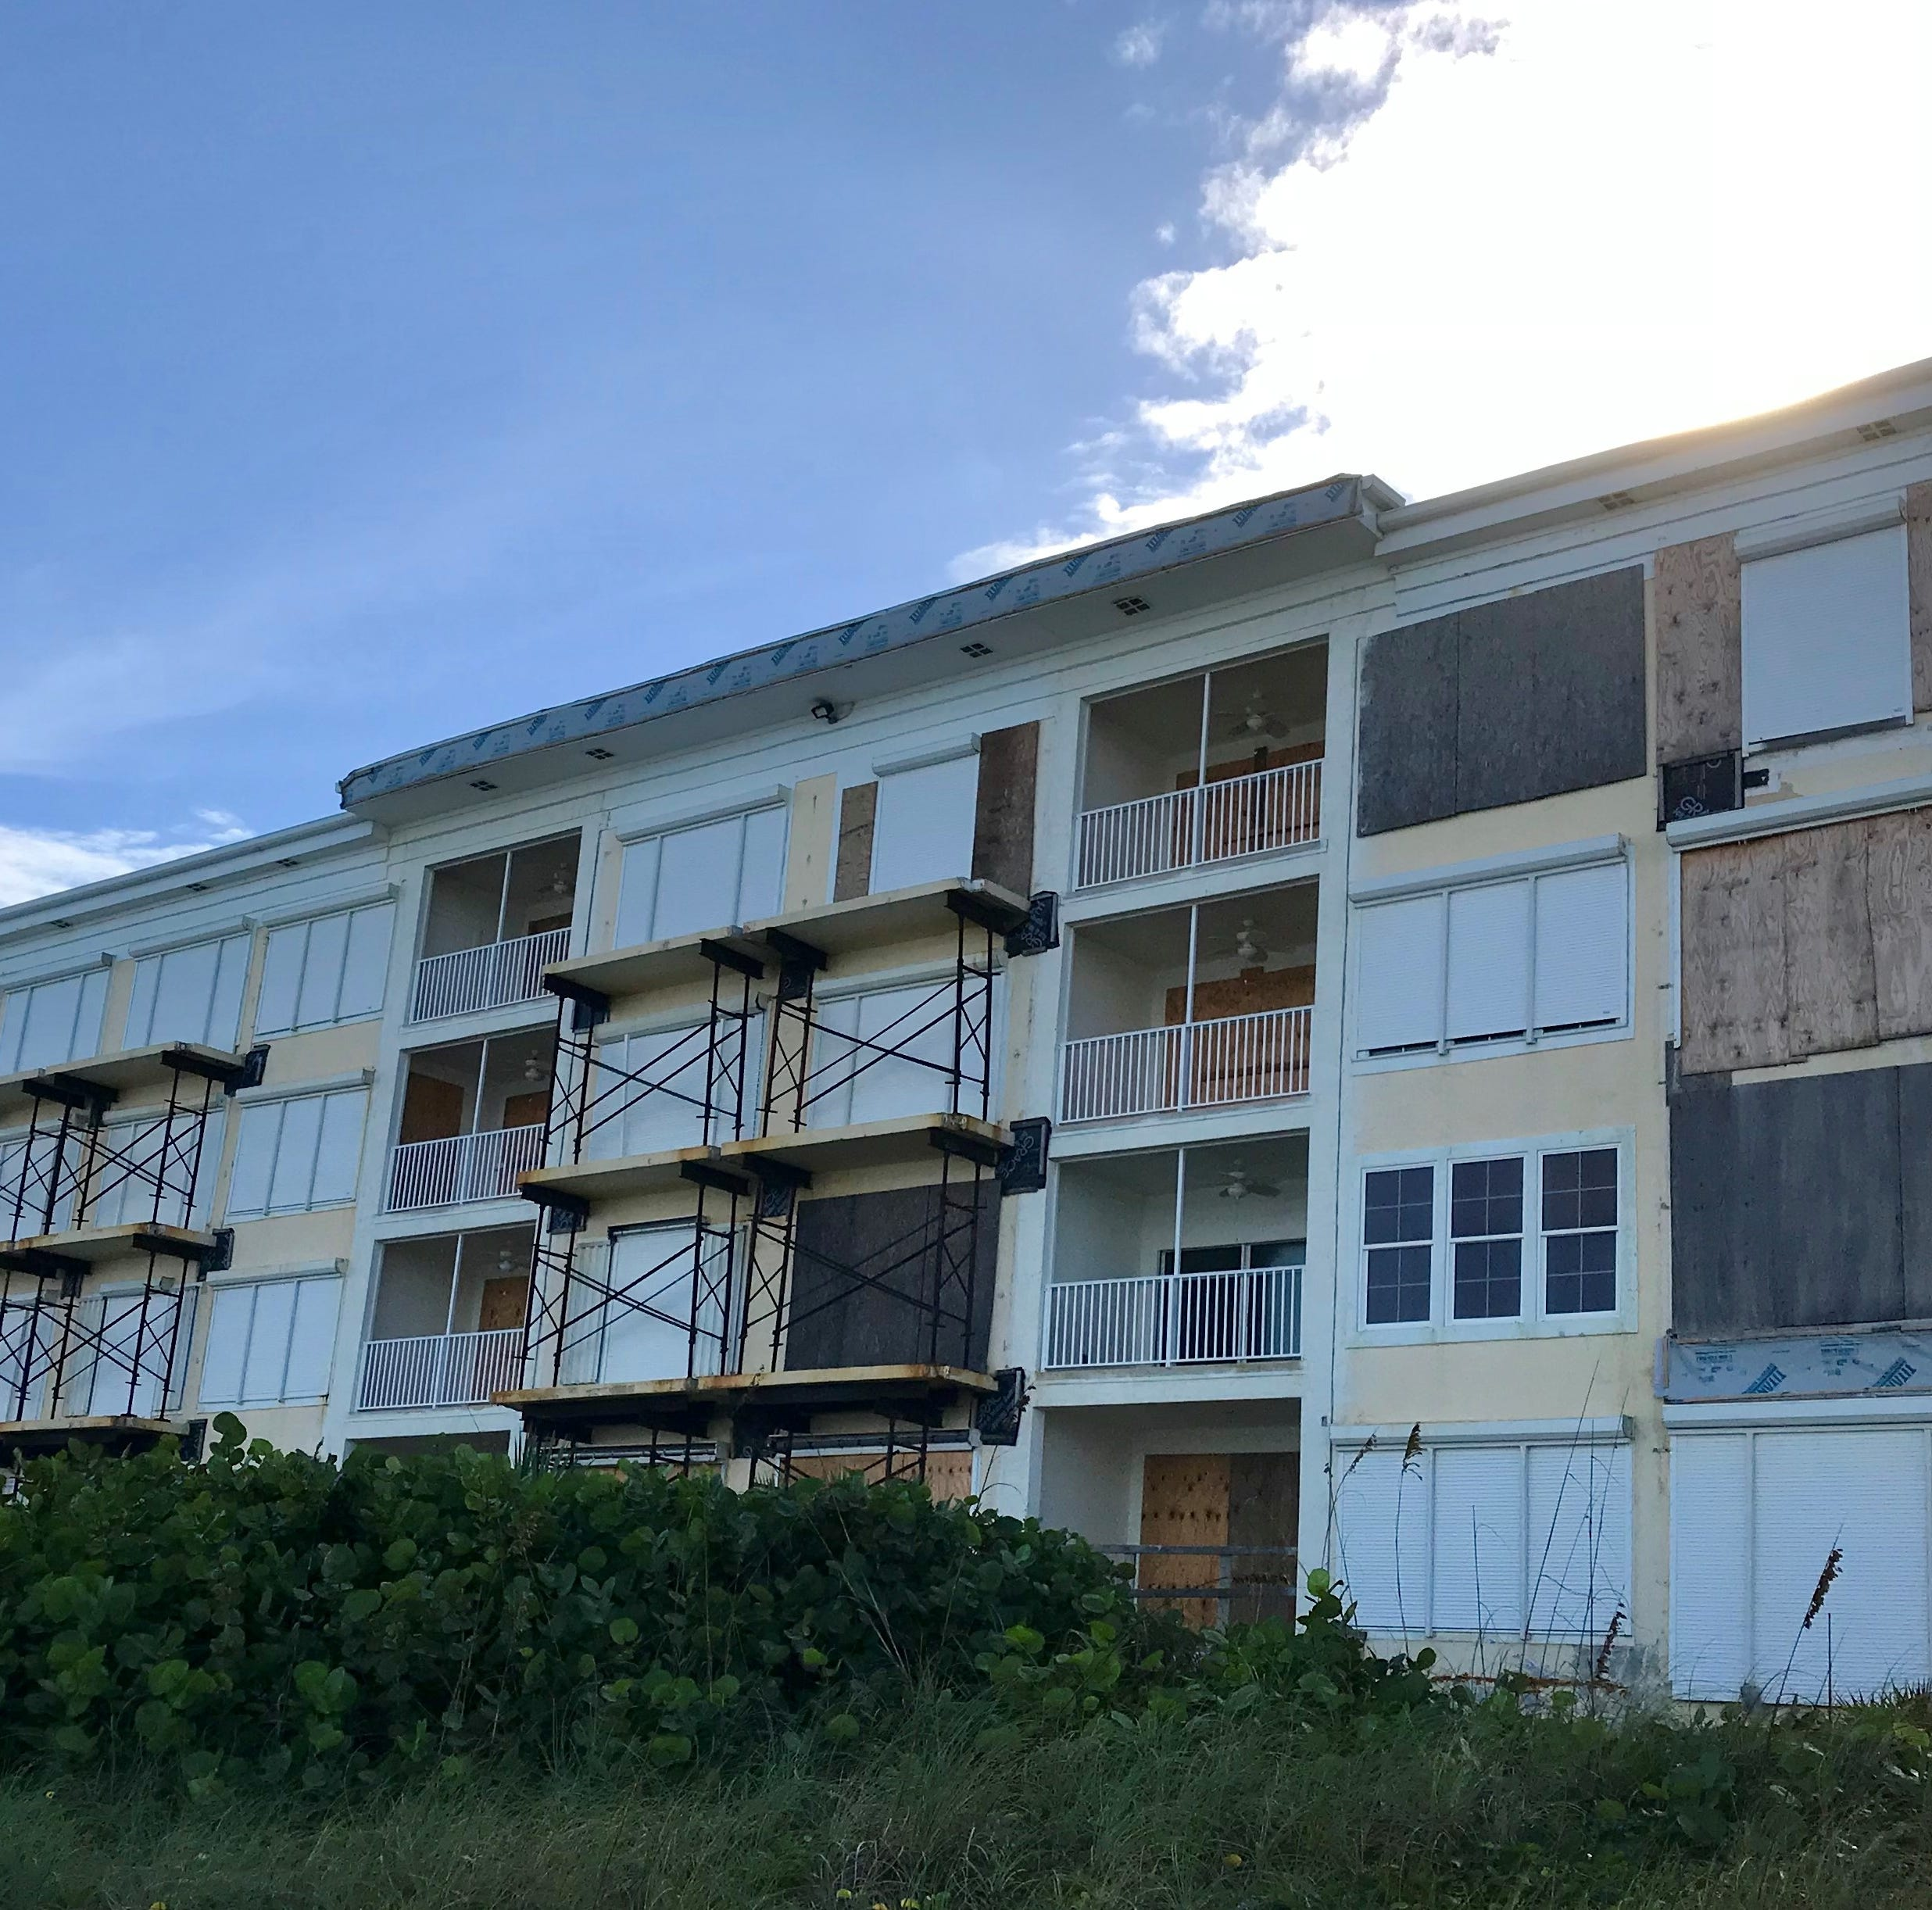 Melbourne Beach condo damages spur lawsuit, code enforcement case since Hurricane Irma